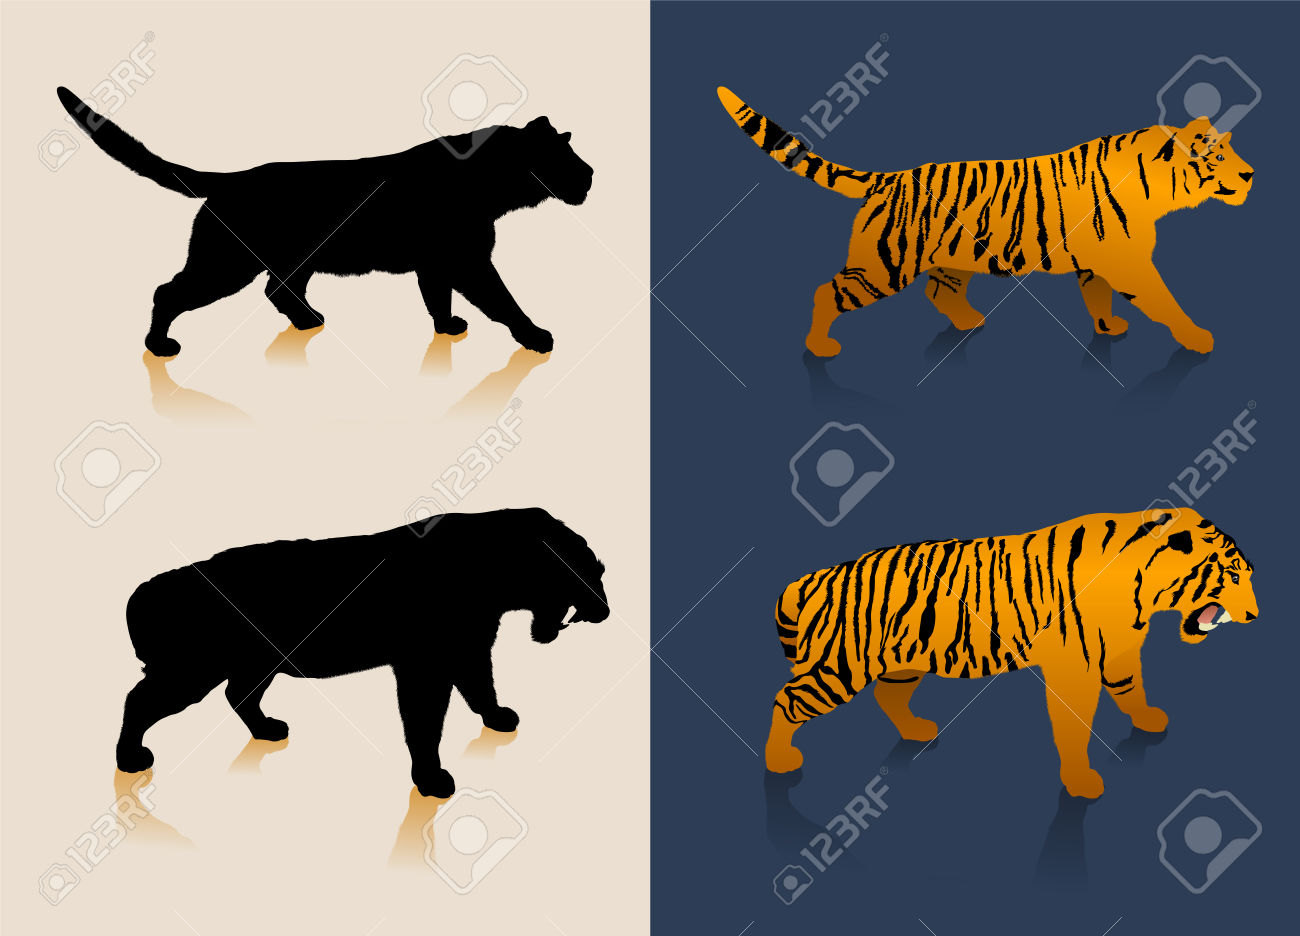 Black And White Tiger Silhouettes And Color Images Royalty Free.